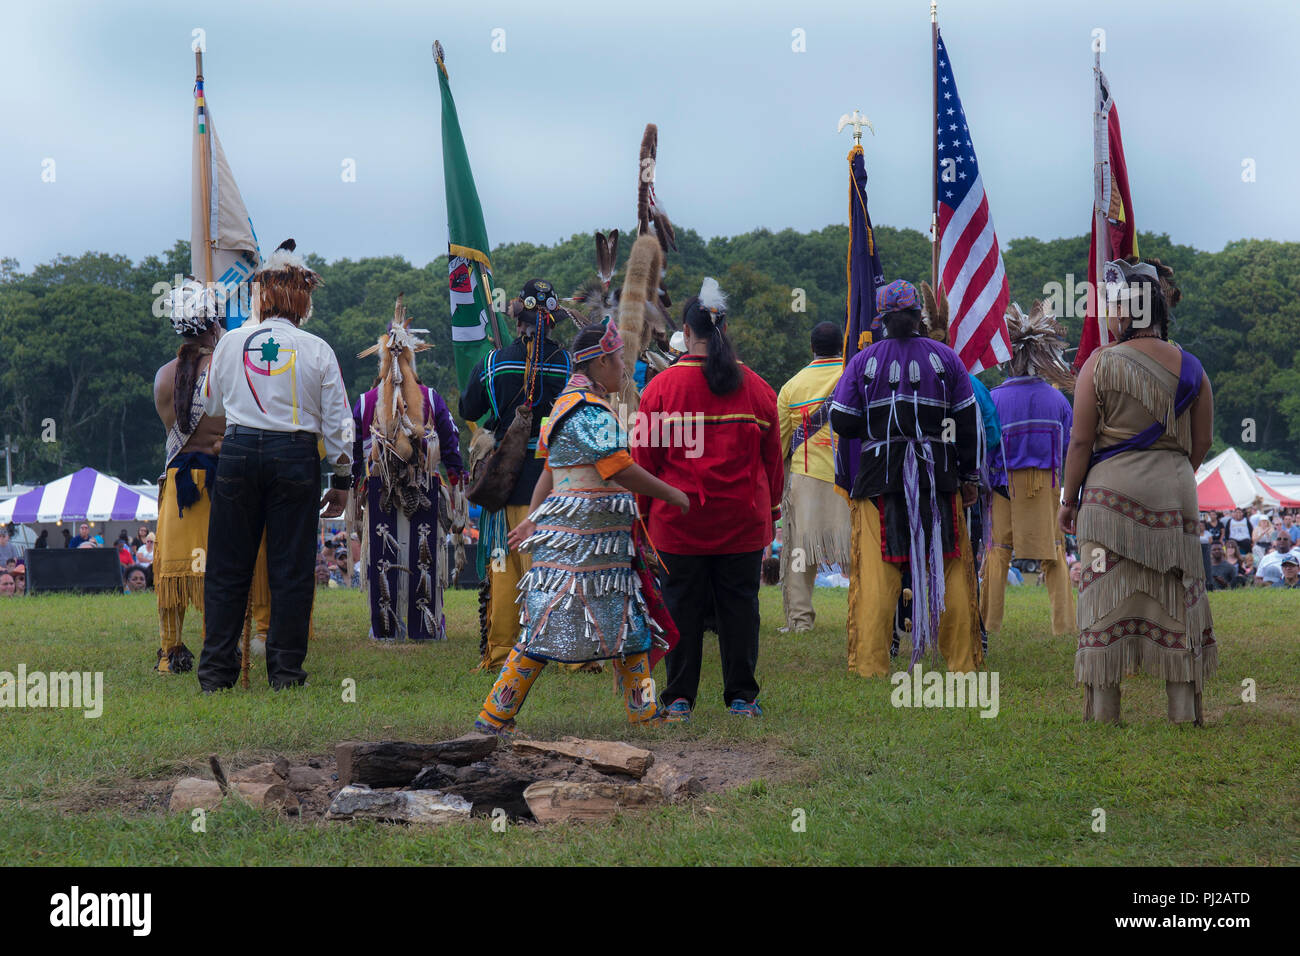 Southhampton, United States of America. 03rd, Sep 2018. Native American start the celebration of the 72nd annual Shinnecock Indian Powwow over the Labour Day weekend in Southampton Long Island New York, in Southhampton, United States of America, 03 September 2018. (PHOTO) Alejandro Sala/Alamy News Stock Photo